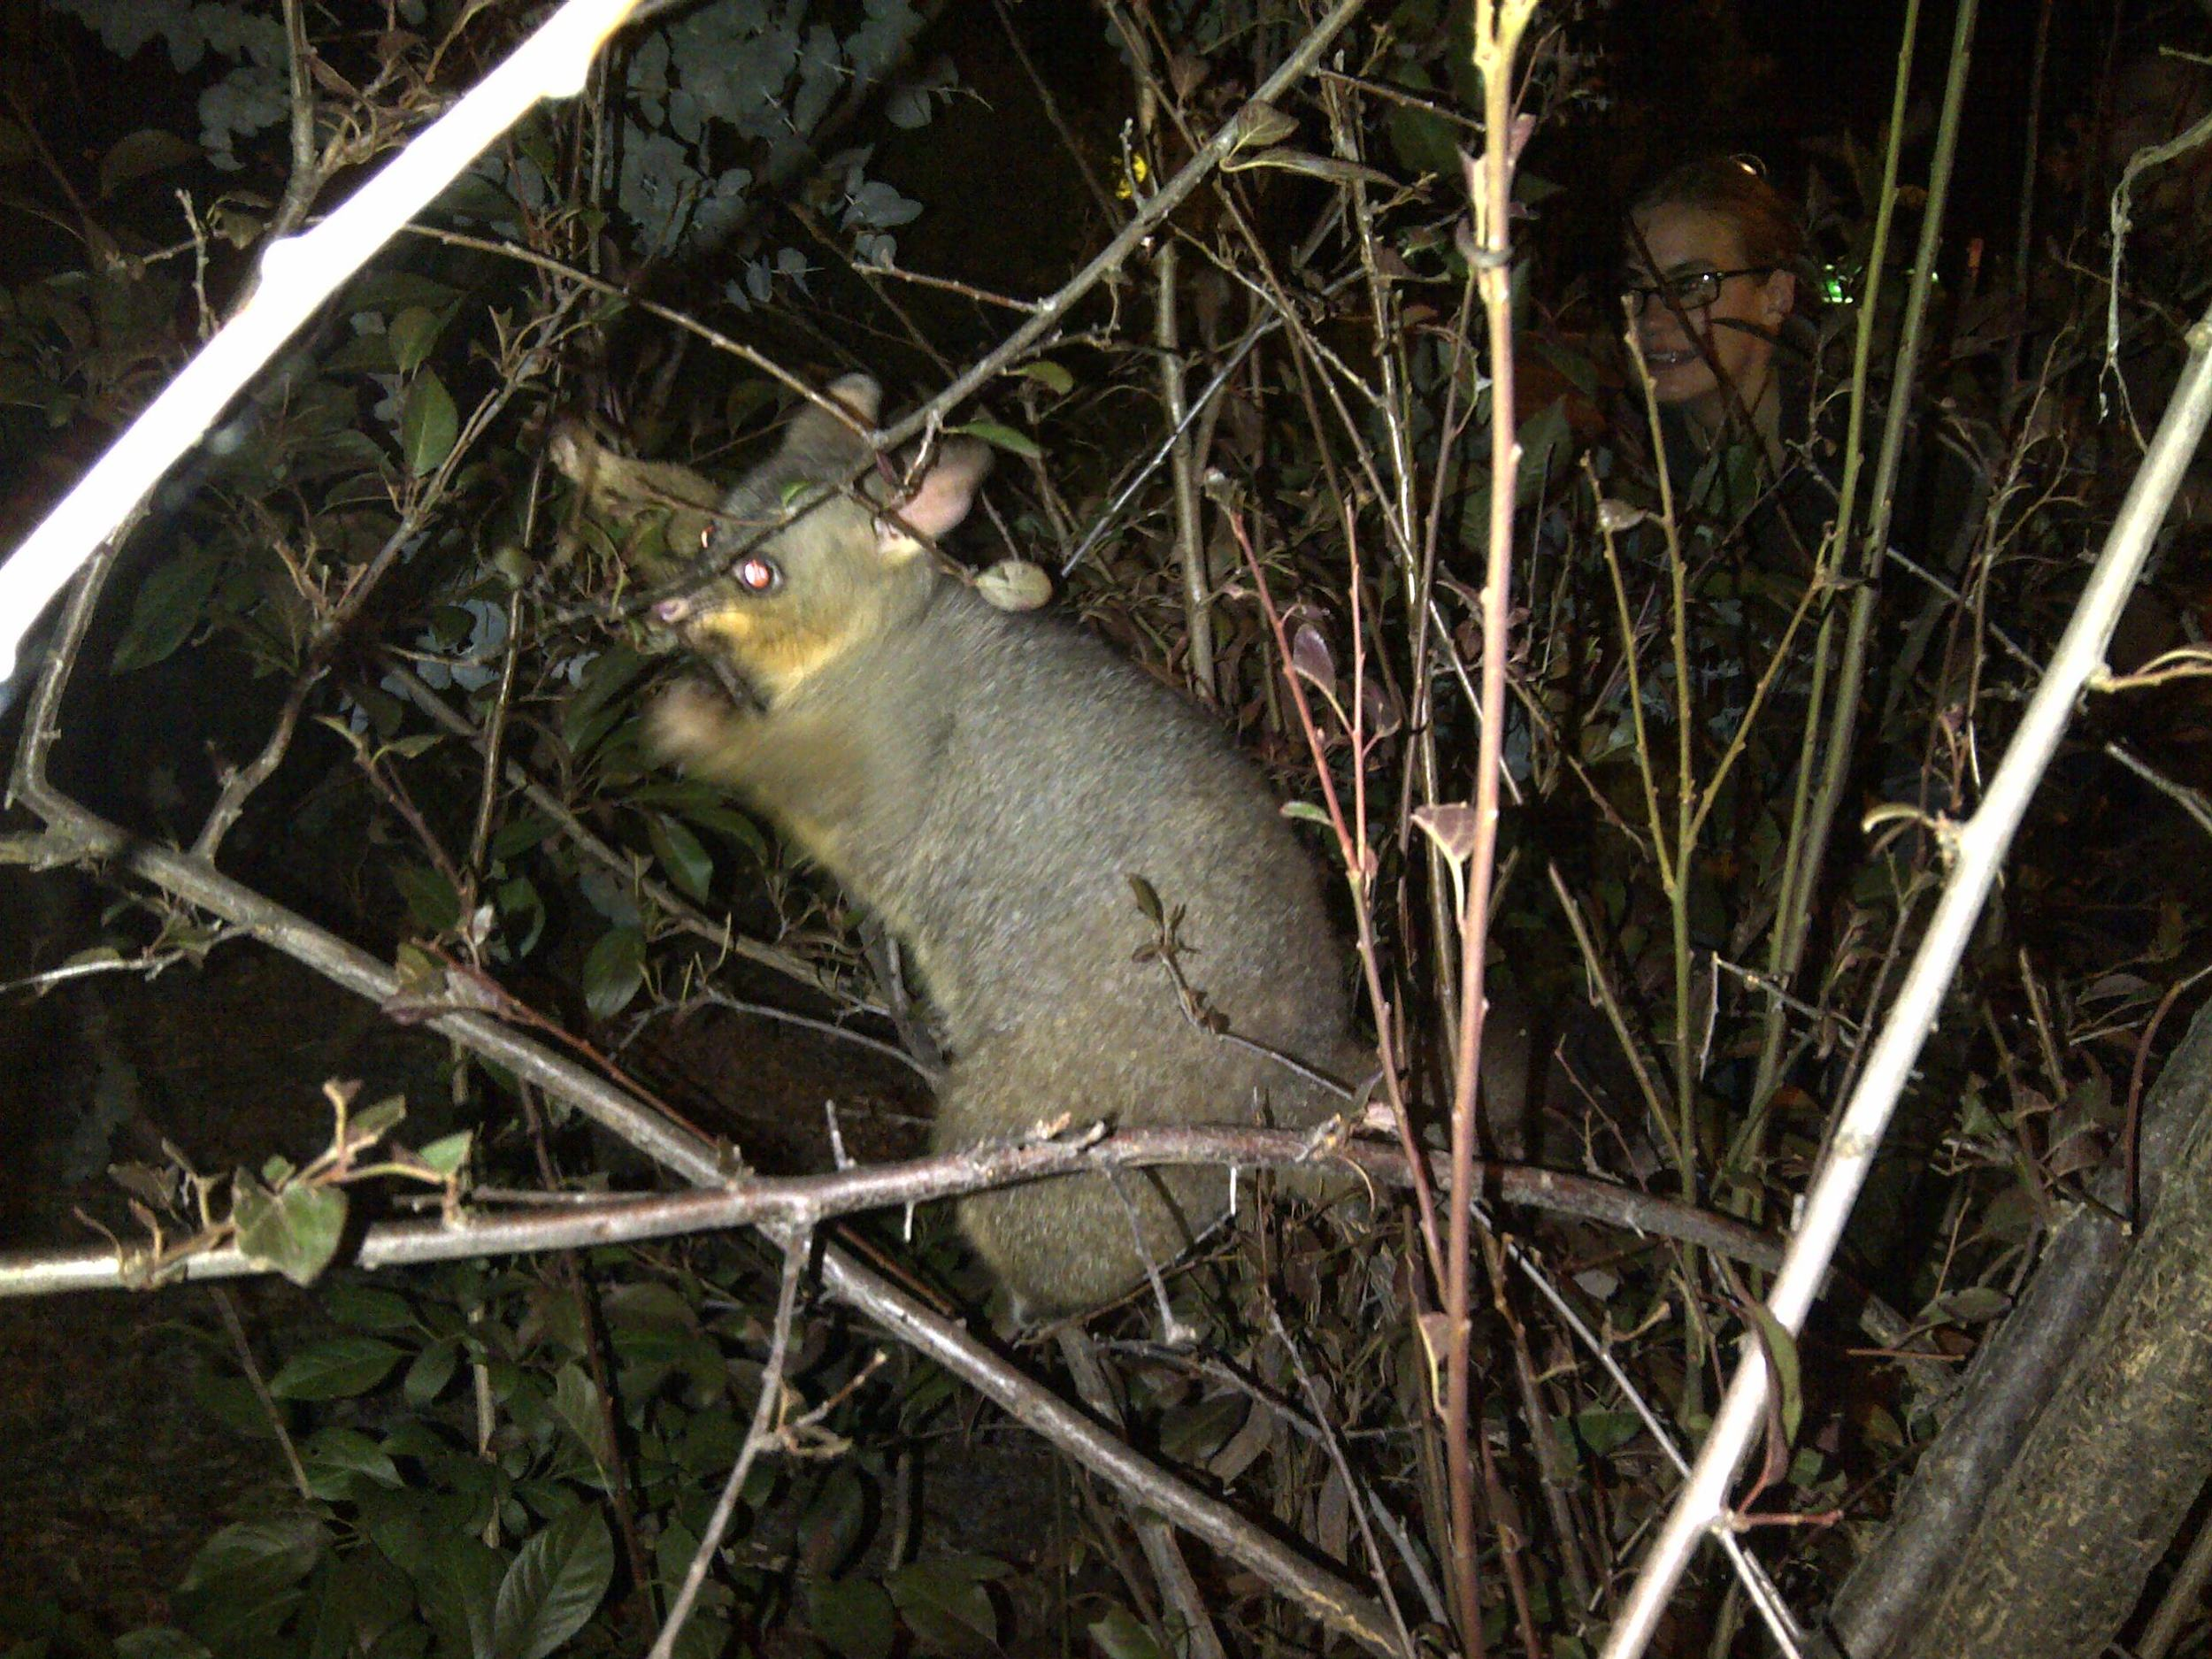 A member of the brushtail family feeding around my house. A visiting researcher who had spent four months in Australia without seeing a brushy can be seen in the background, fulfilling her dream on her last night in Canberra.